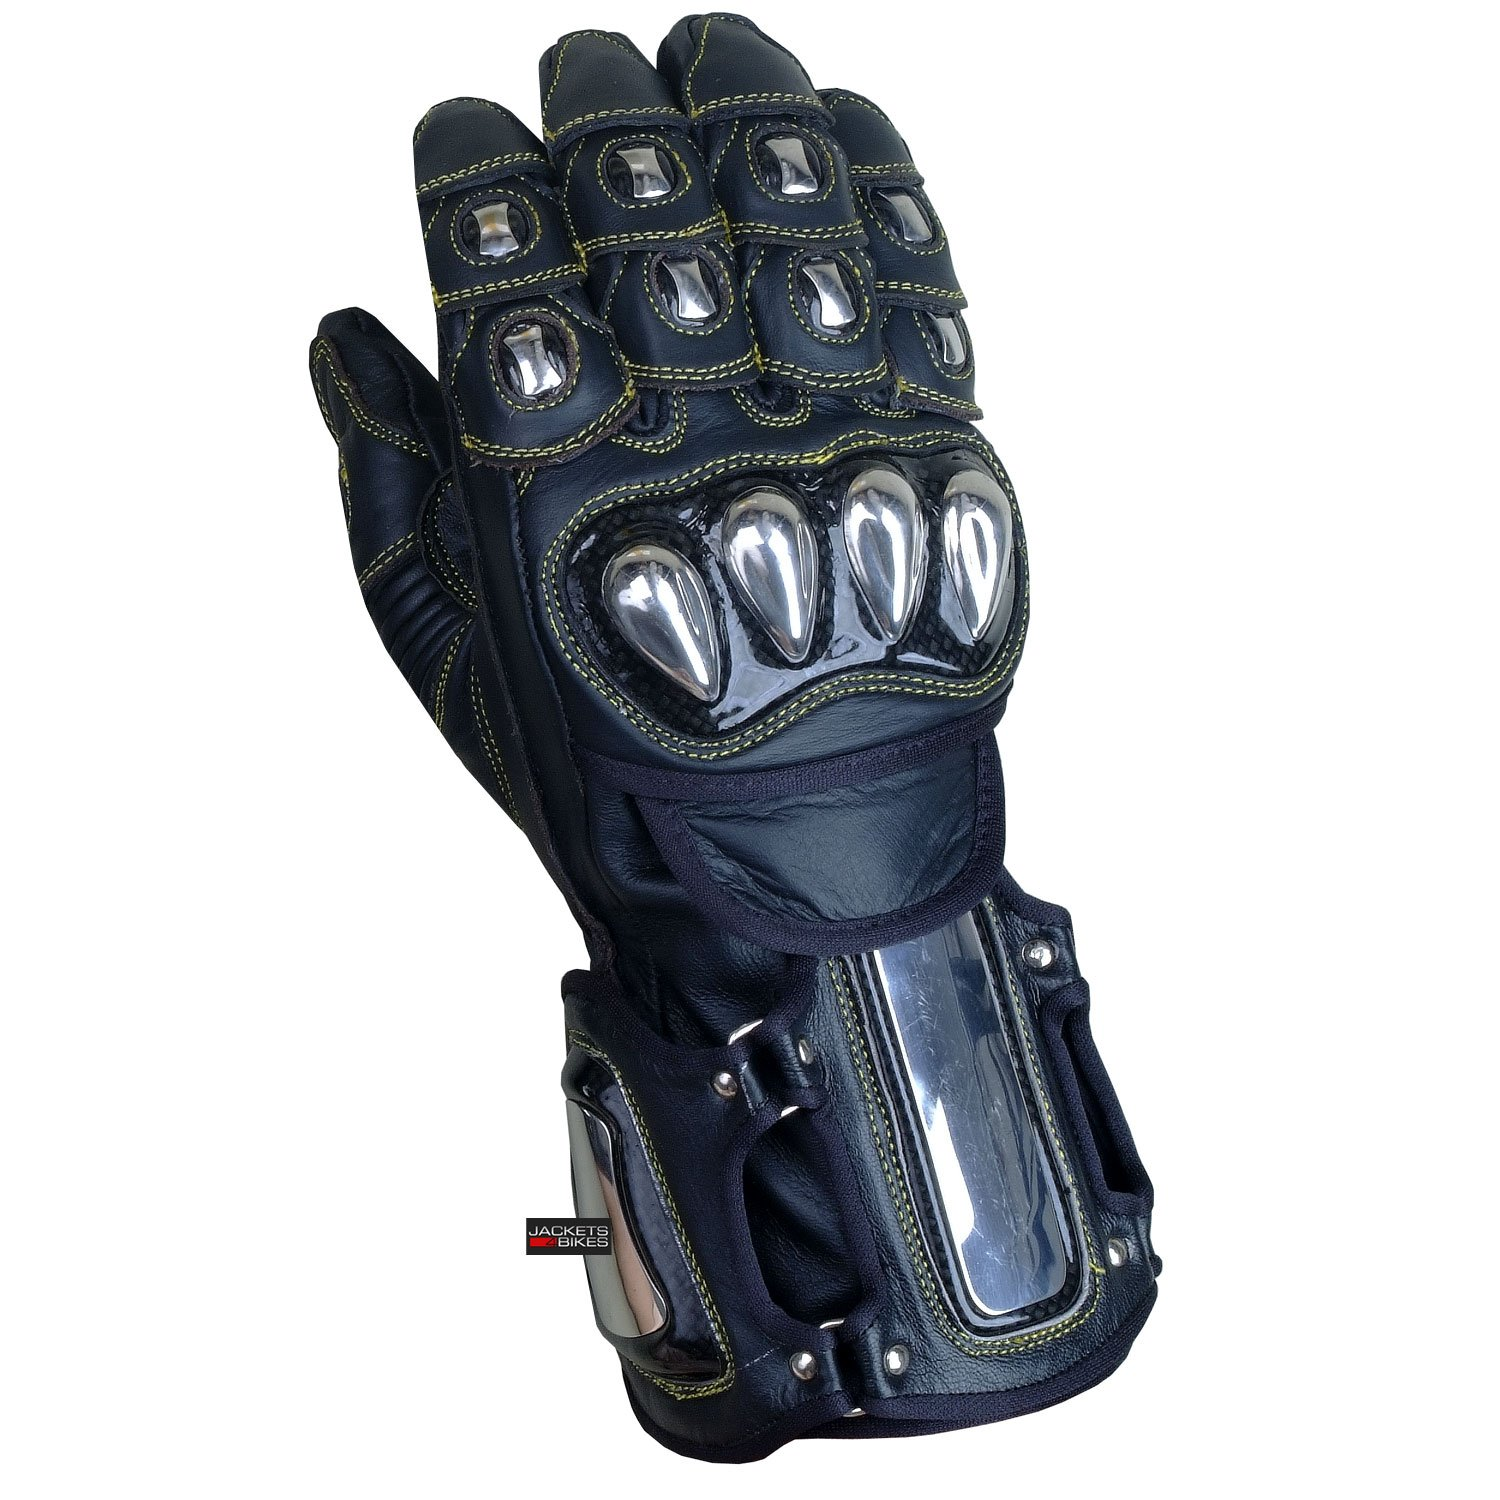 Motorcycle gloves thin - Amazon Com Excalibur Black Leather Carbon Steel Armor Motorcycle Gloves Size S Clothing